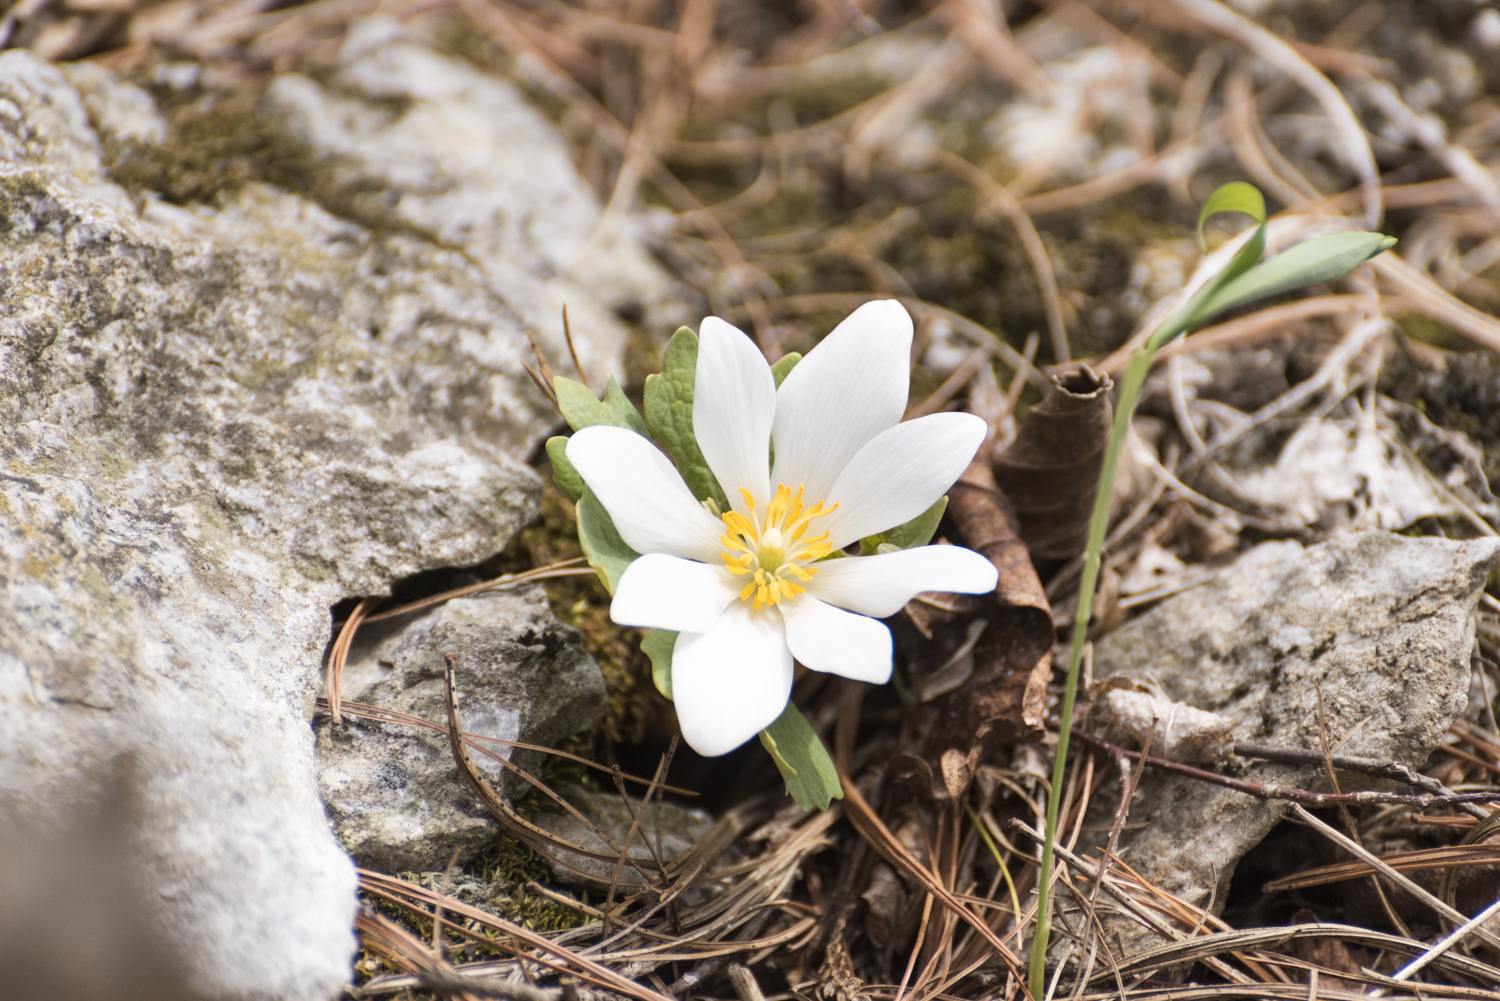 Bloodroot wildflower. Photo by Nathanael Asaro